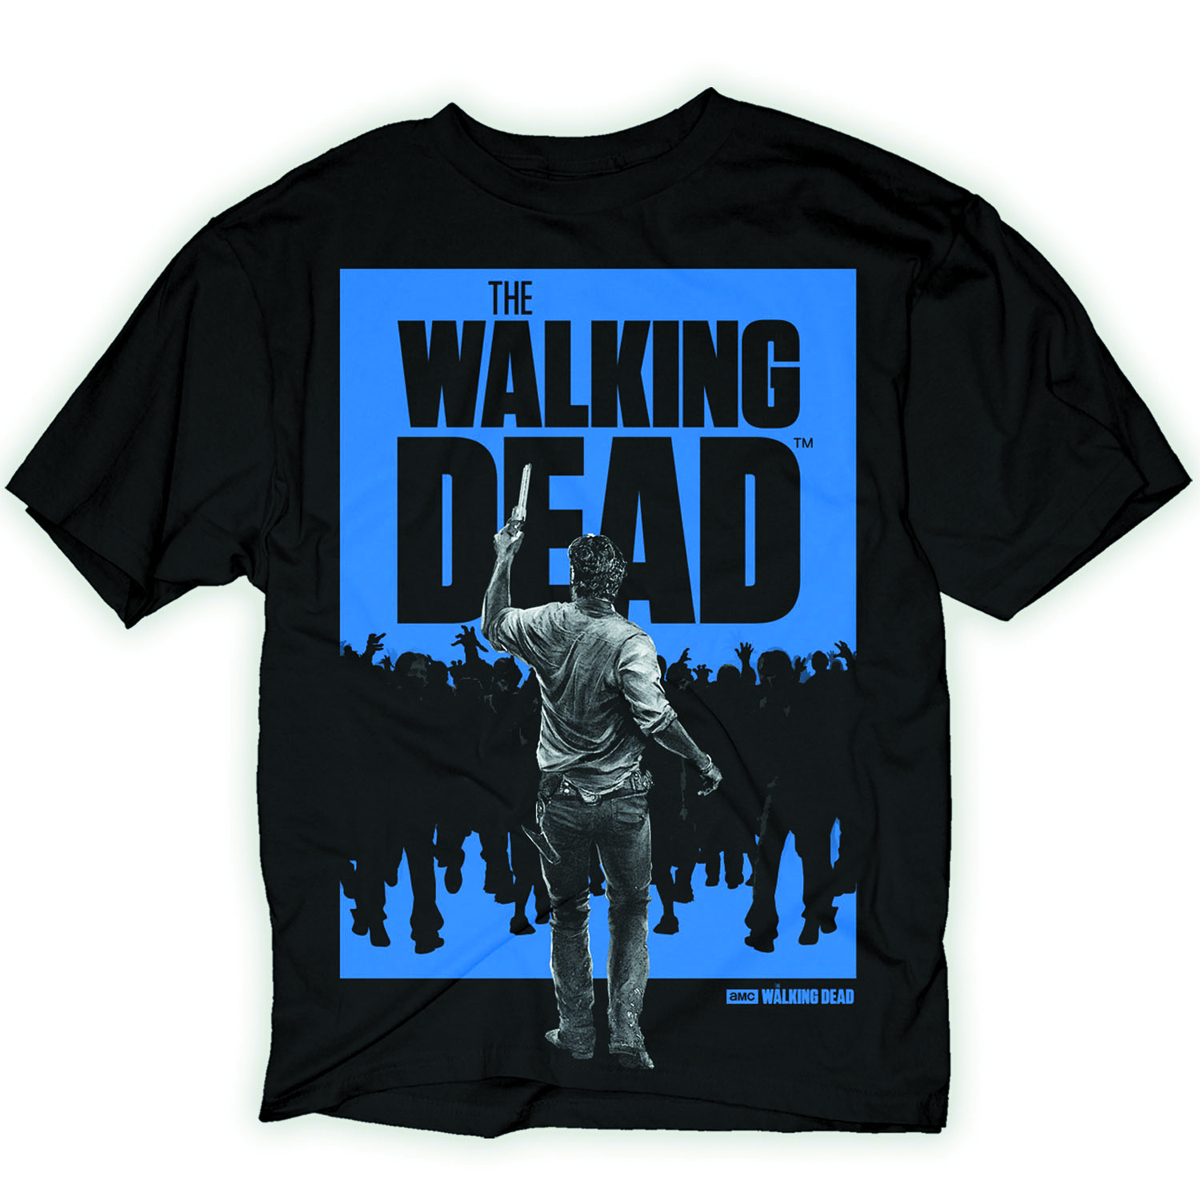 WALKING DEAD RICK WALKER PX BLK T/S LG